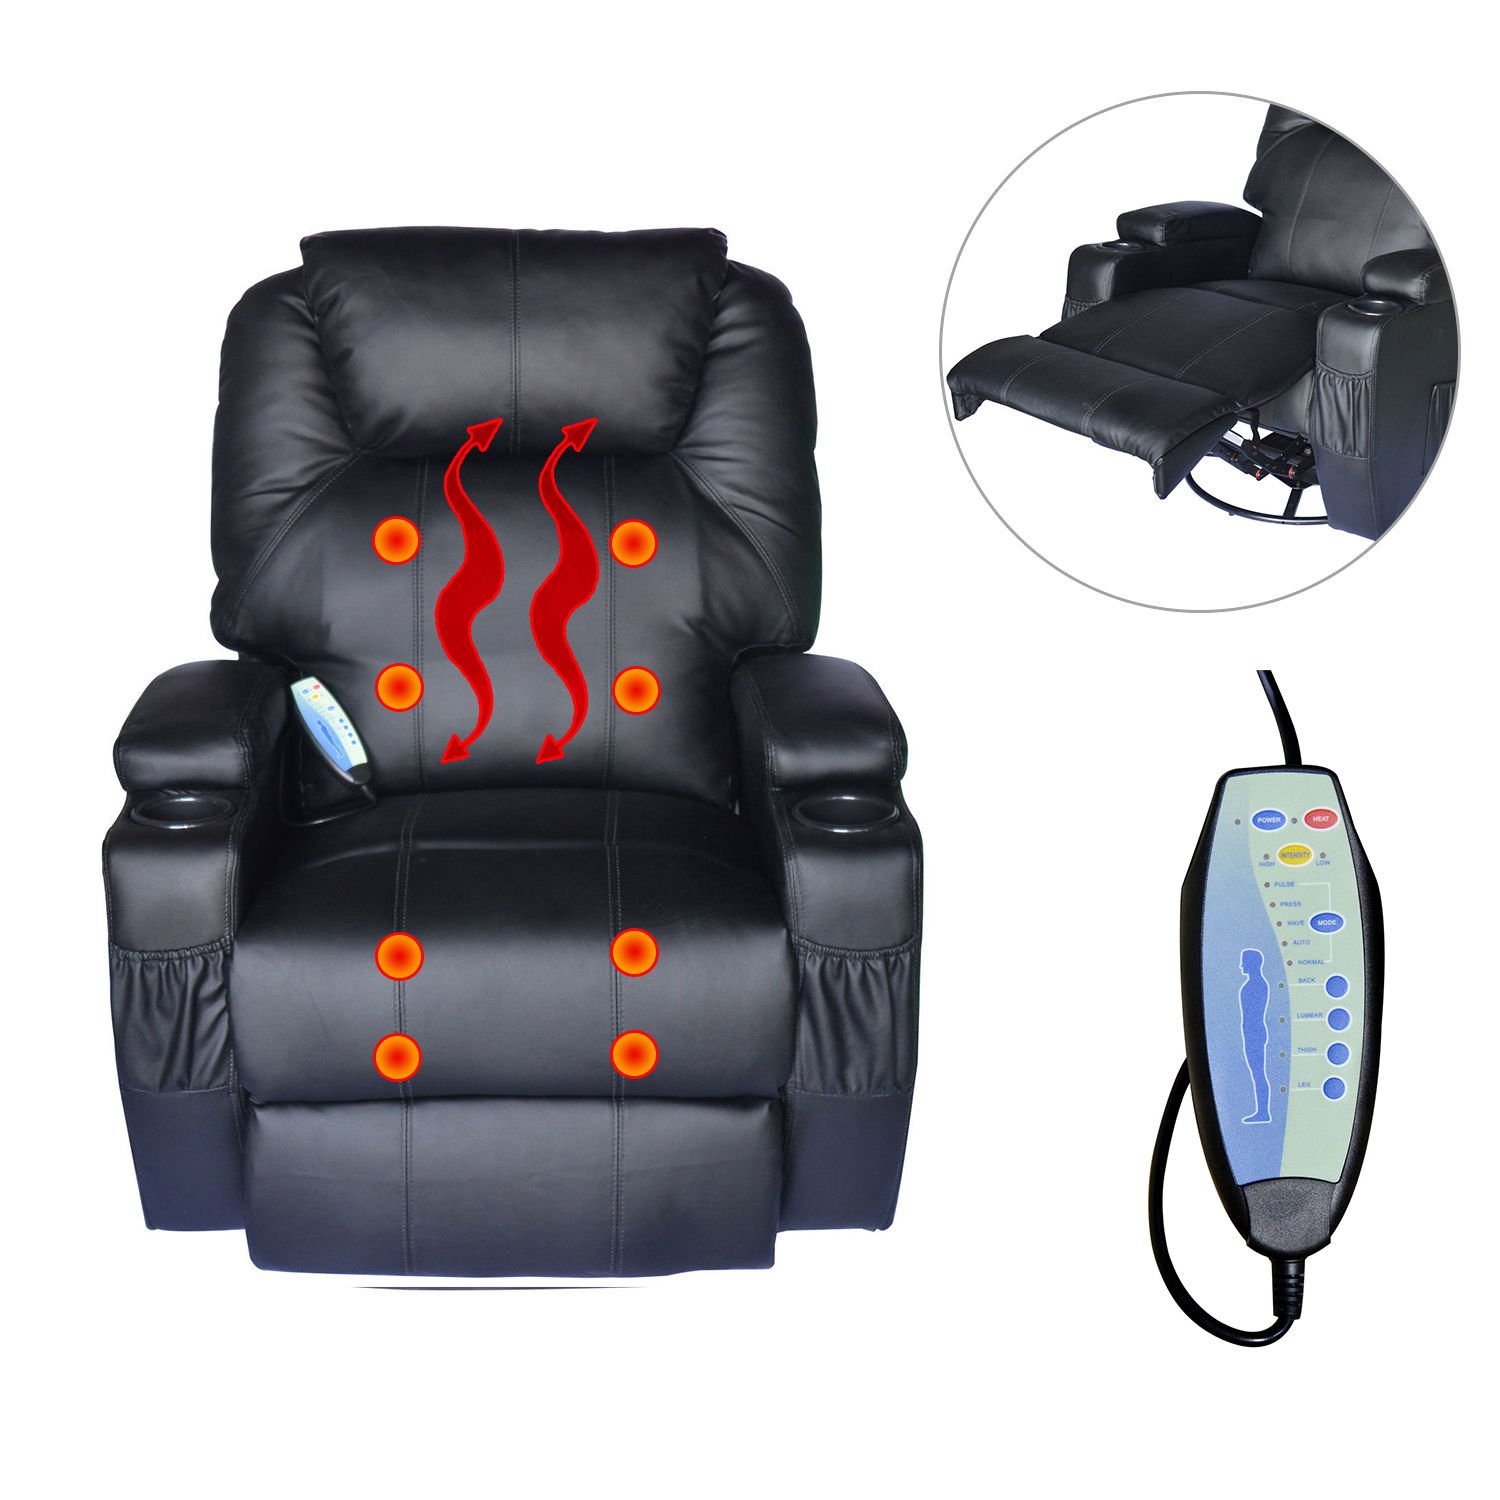 Amazon Hom PU Leather Heated Vibrating 360 Degree Swivel